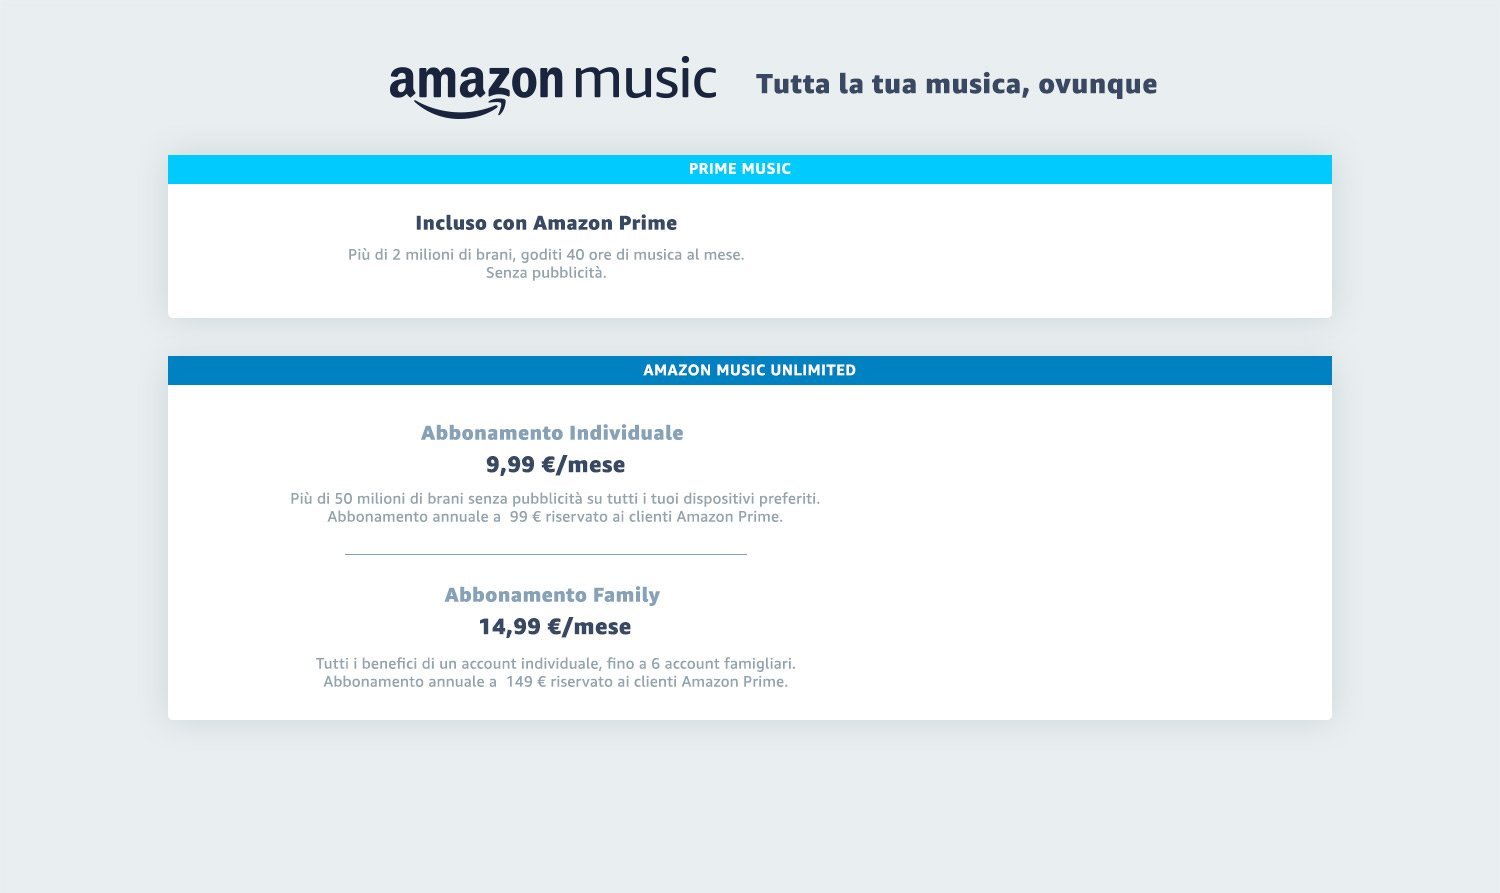 Amazon Music Unlimited. Tutta la tua musica, ovunque tu sia